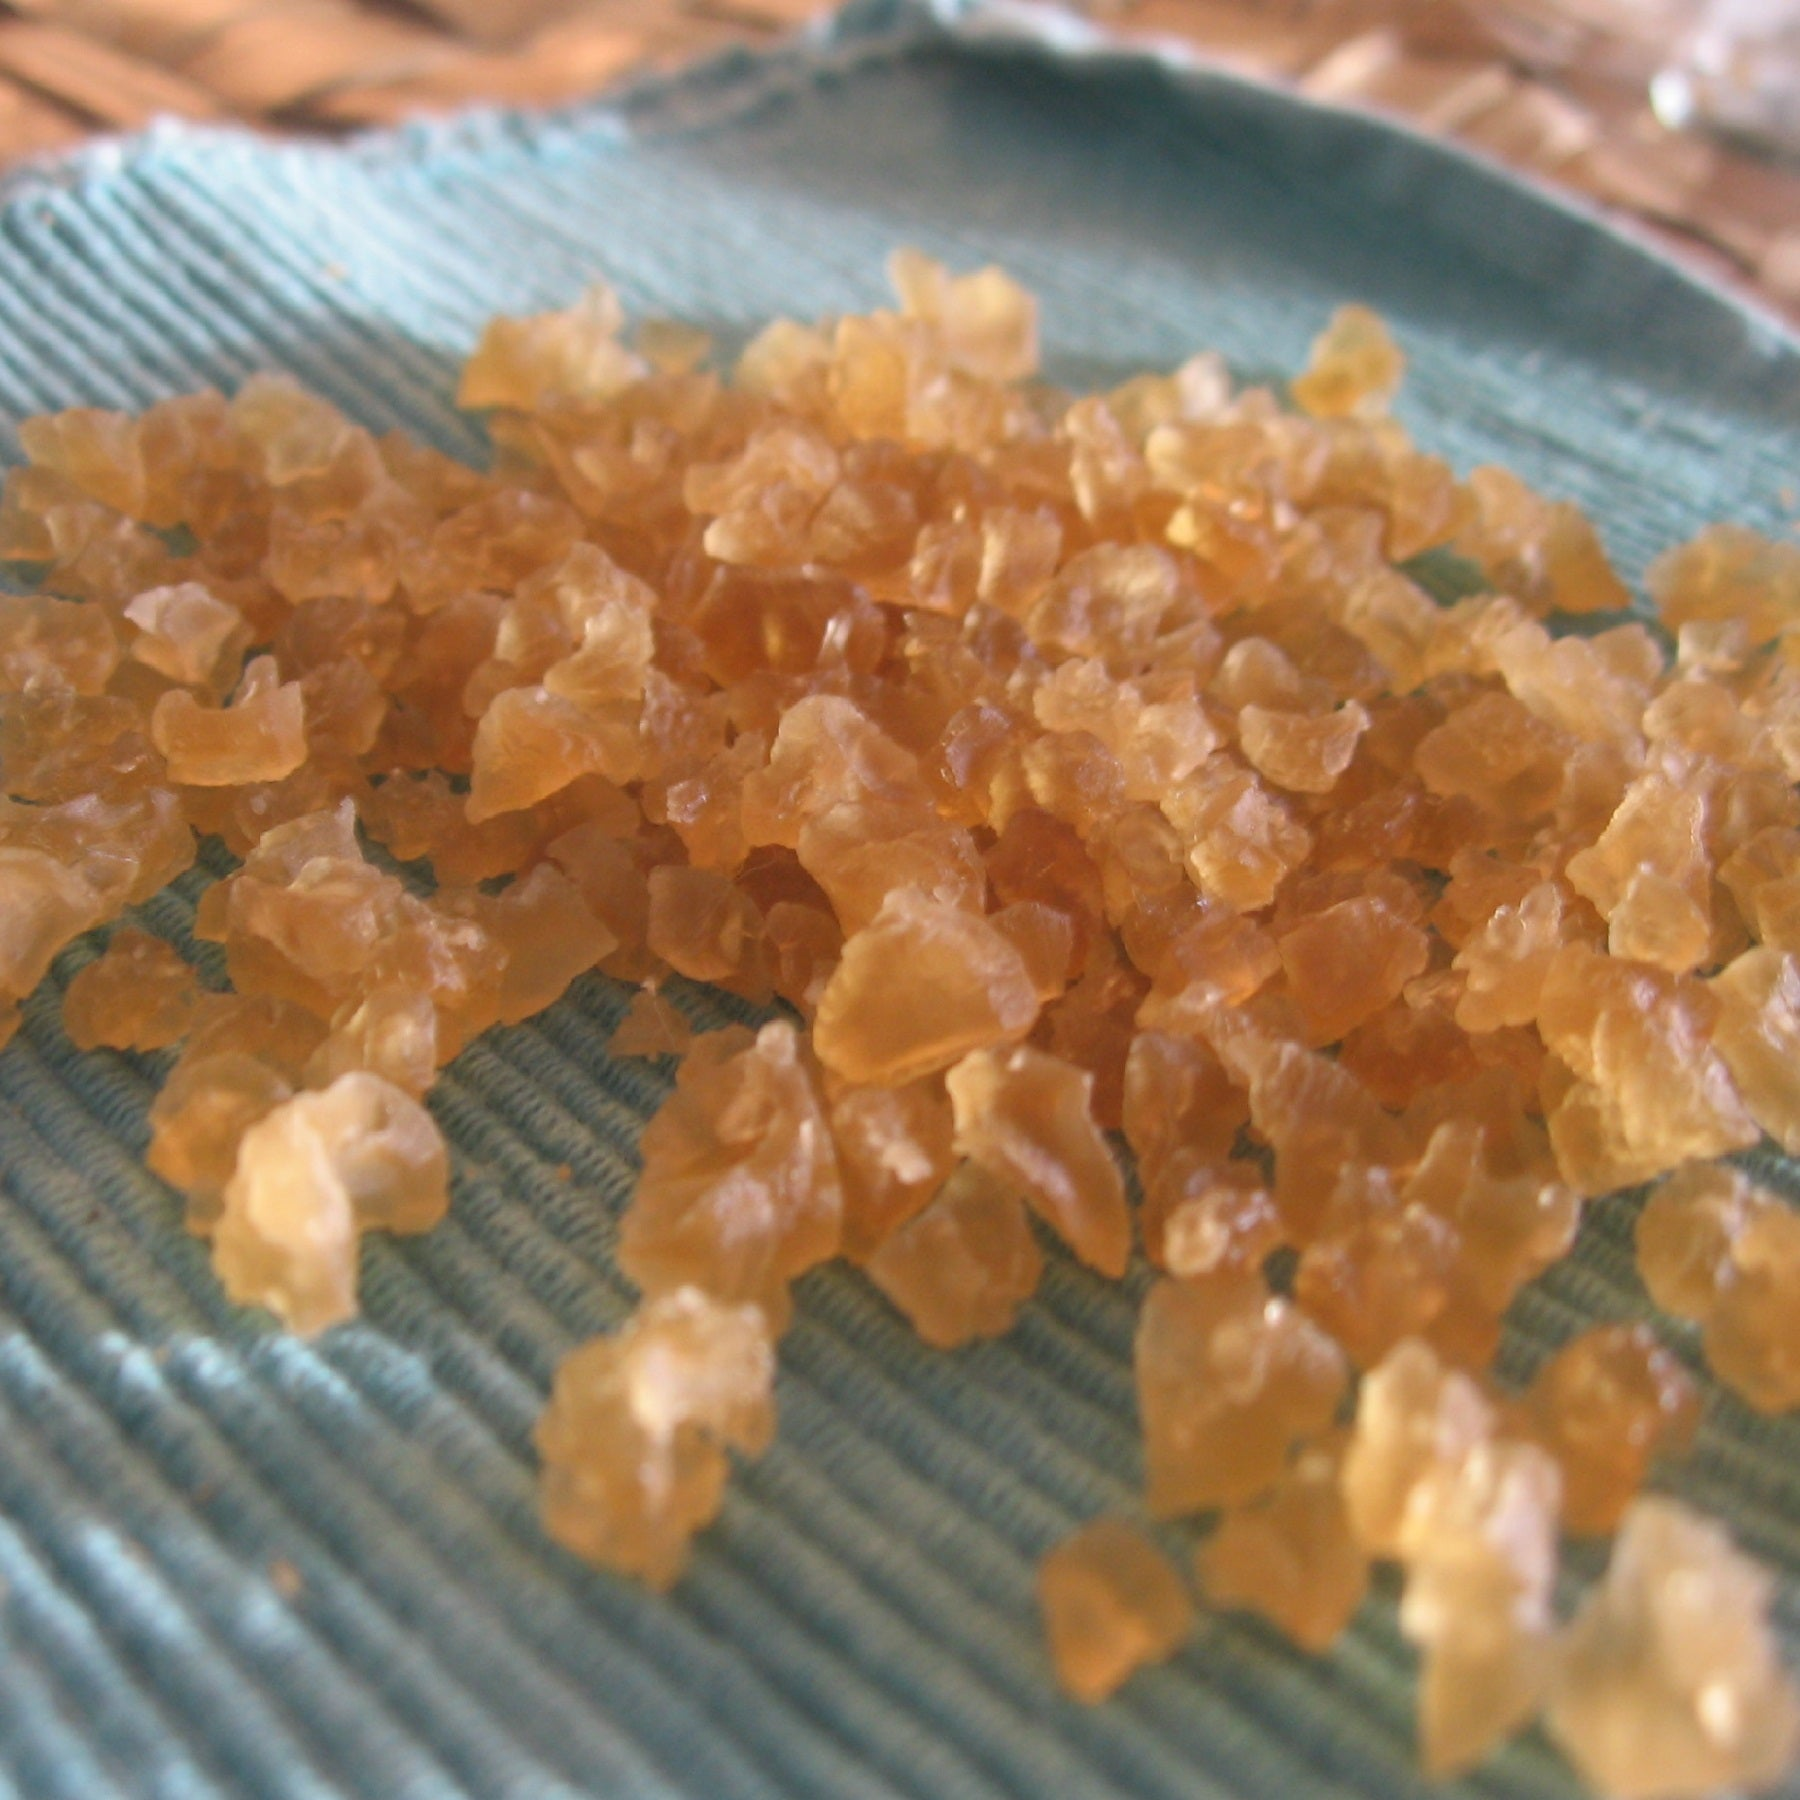 Genuine Dried Water Kefir Grains - Yemoos Nourishing Cultures